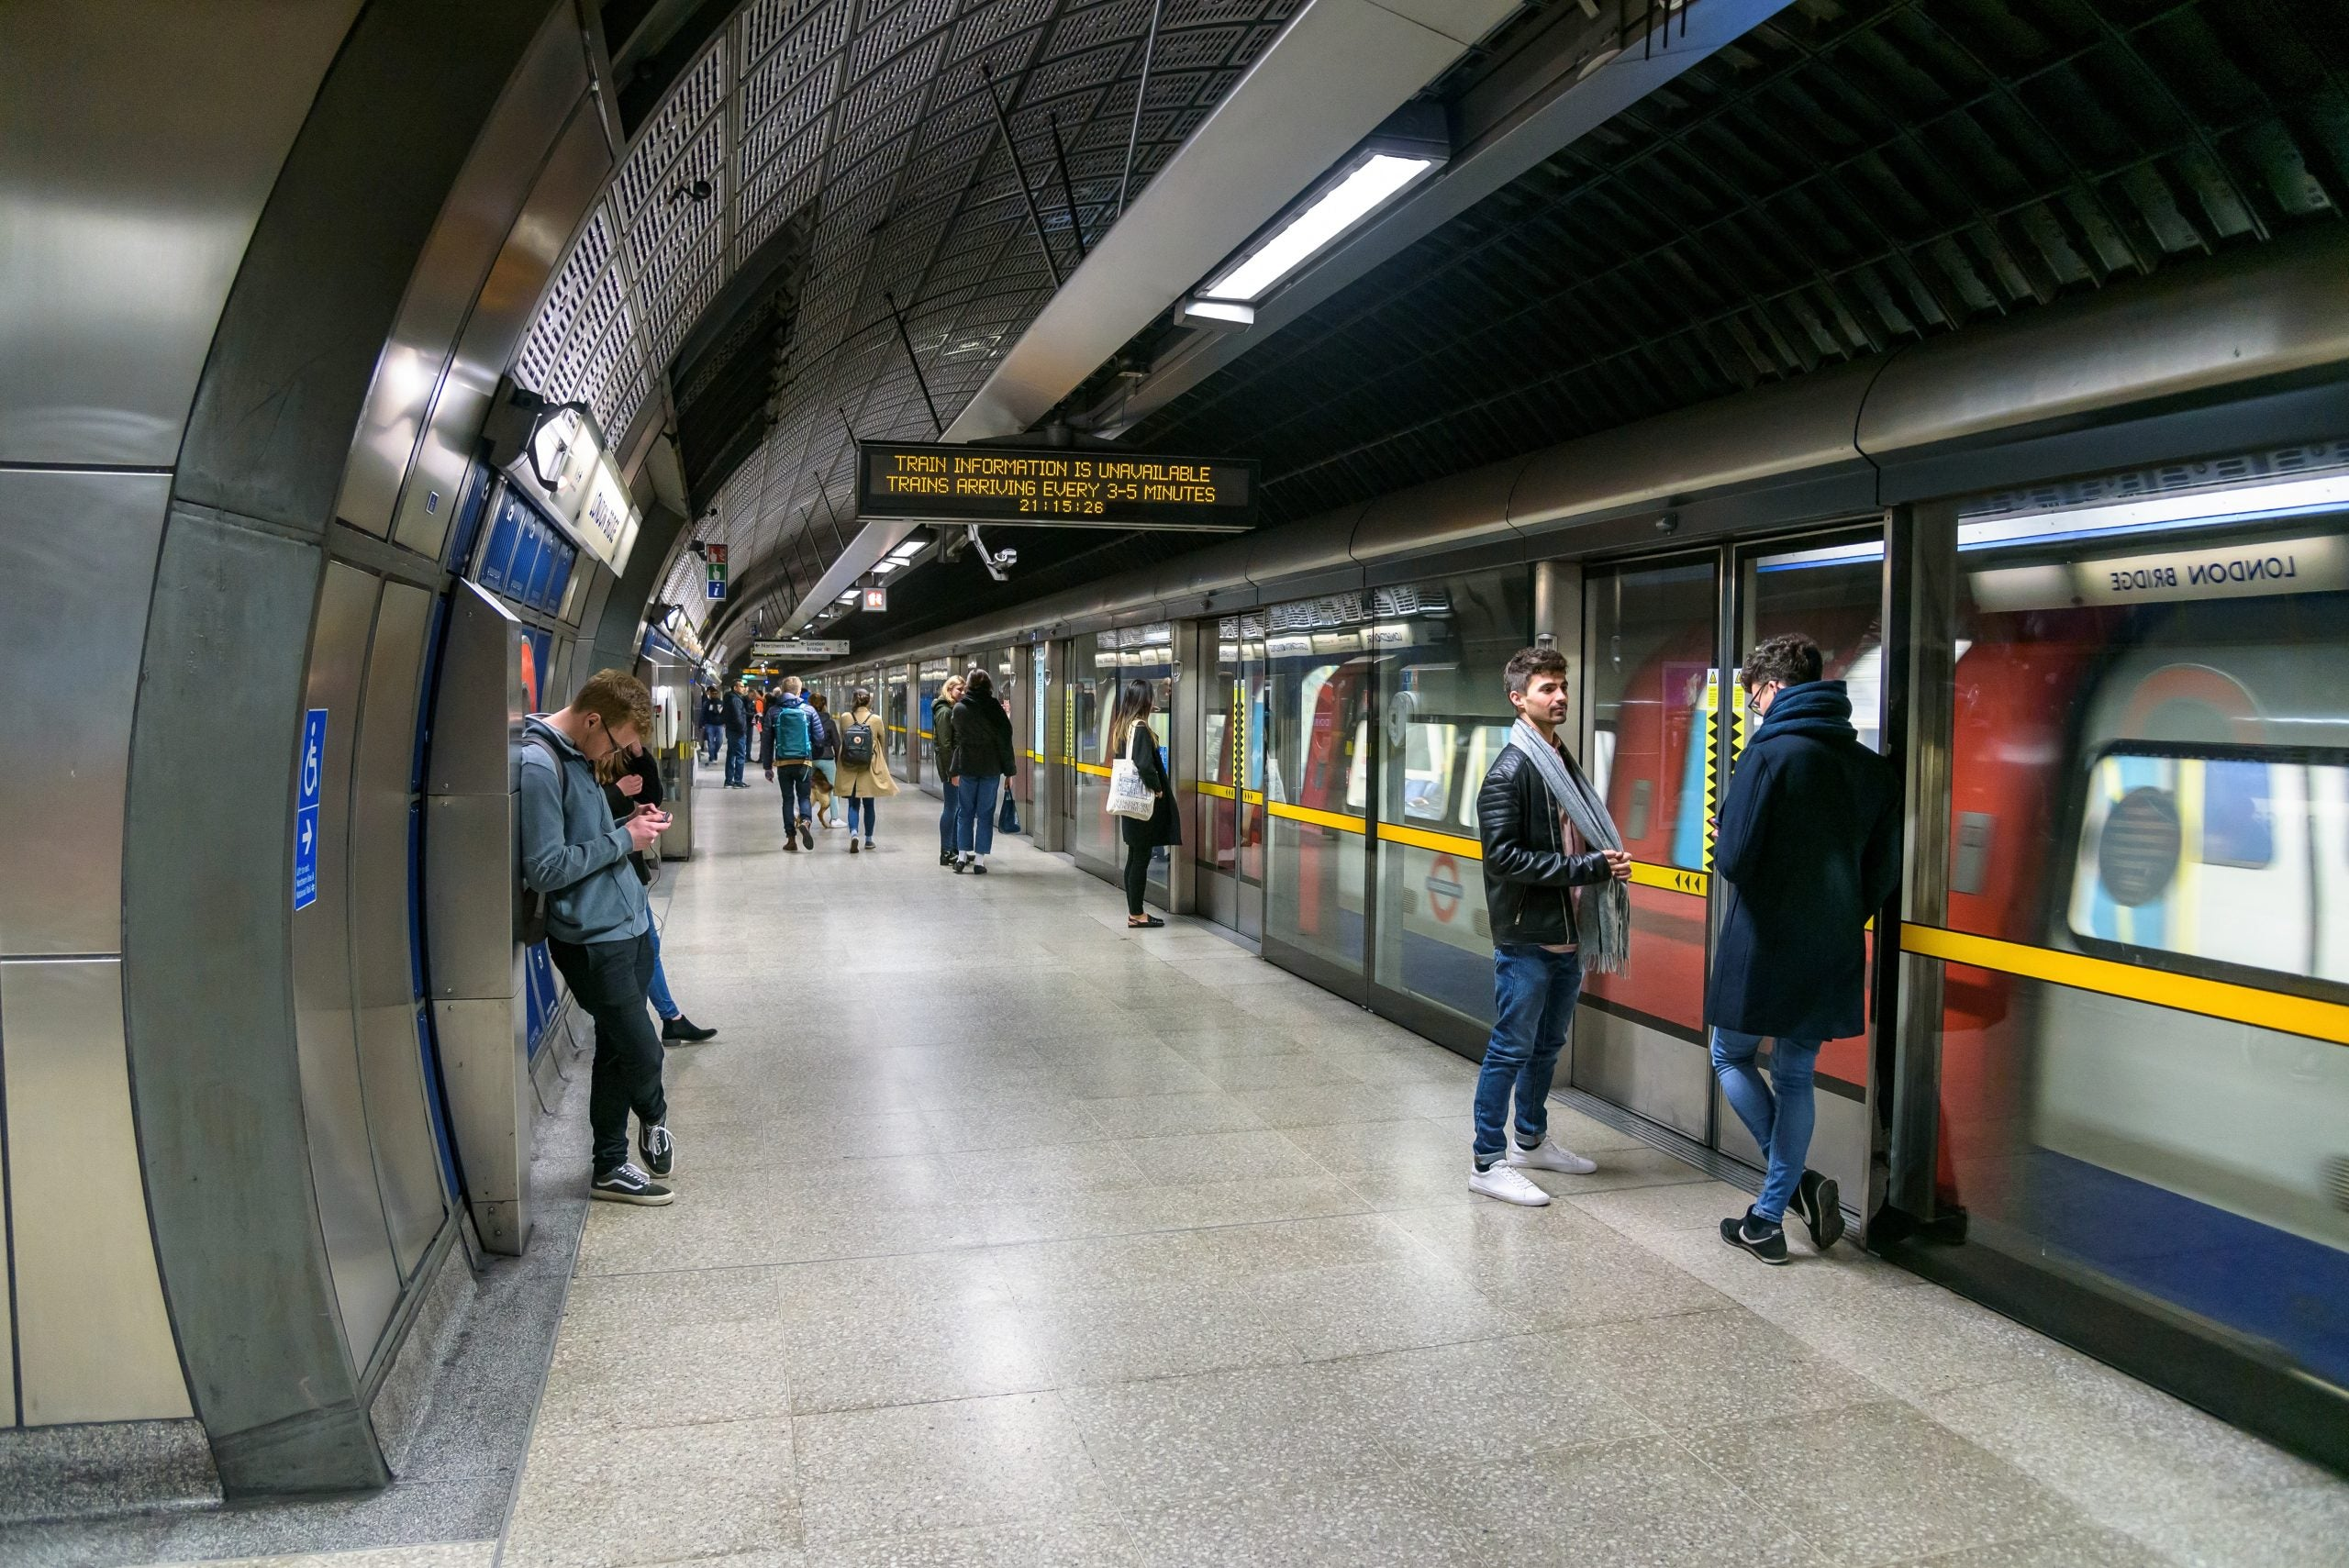 EE joins TfL 4G trial on London Underground